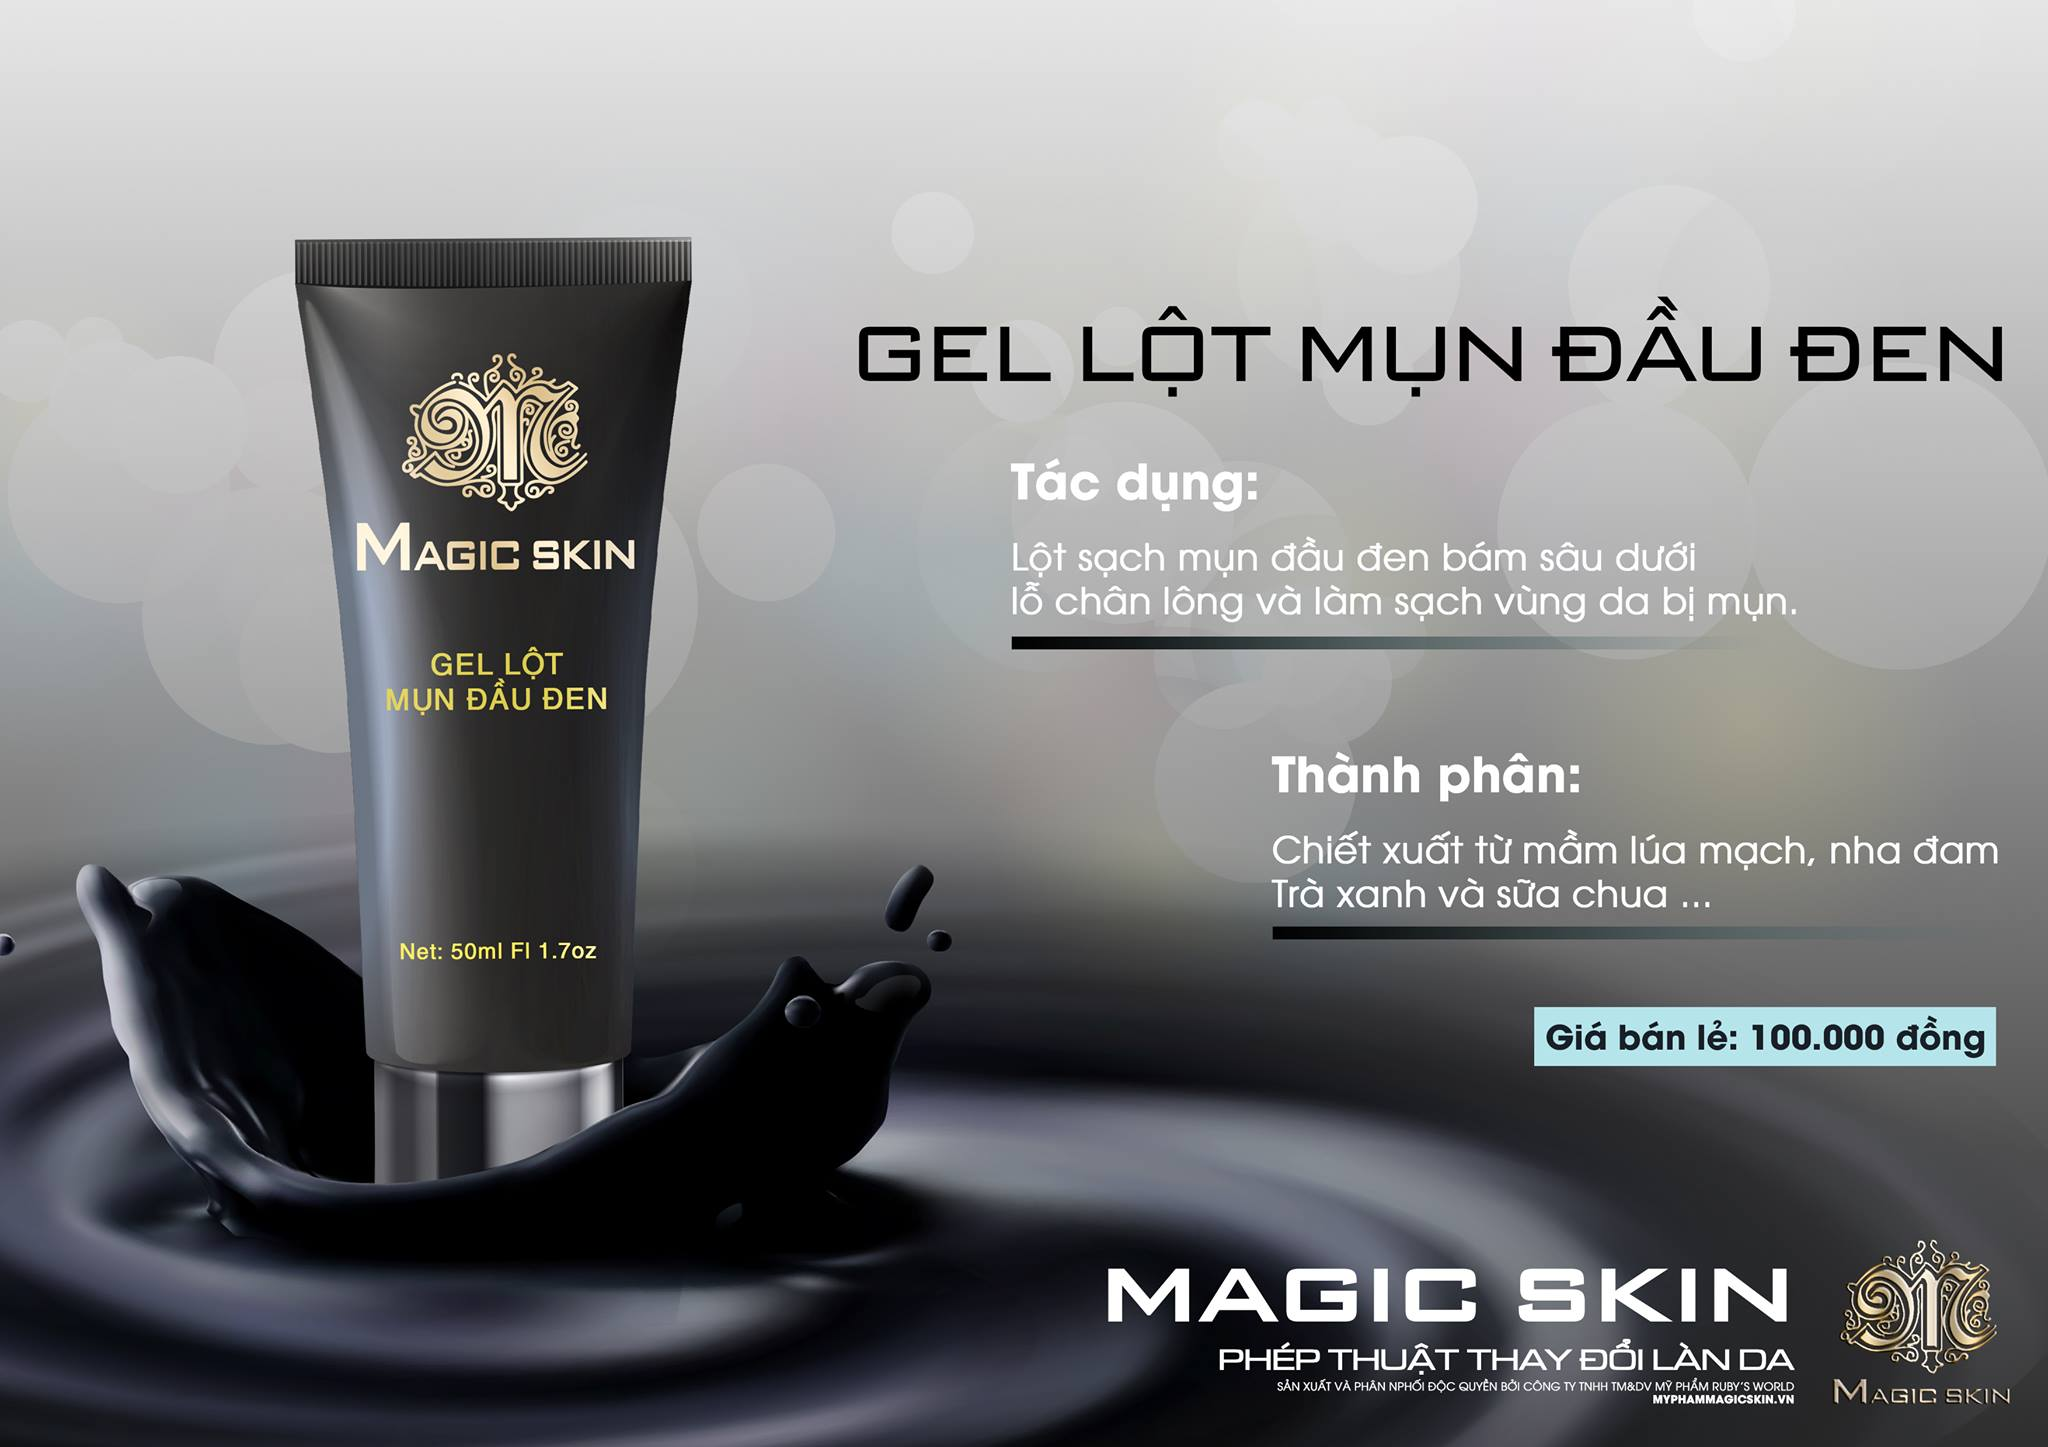 gel-lot-mun-dau-den-magic-skin